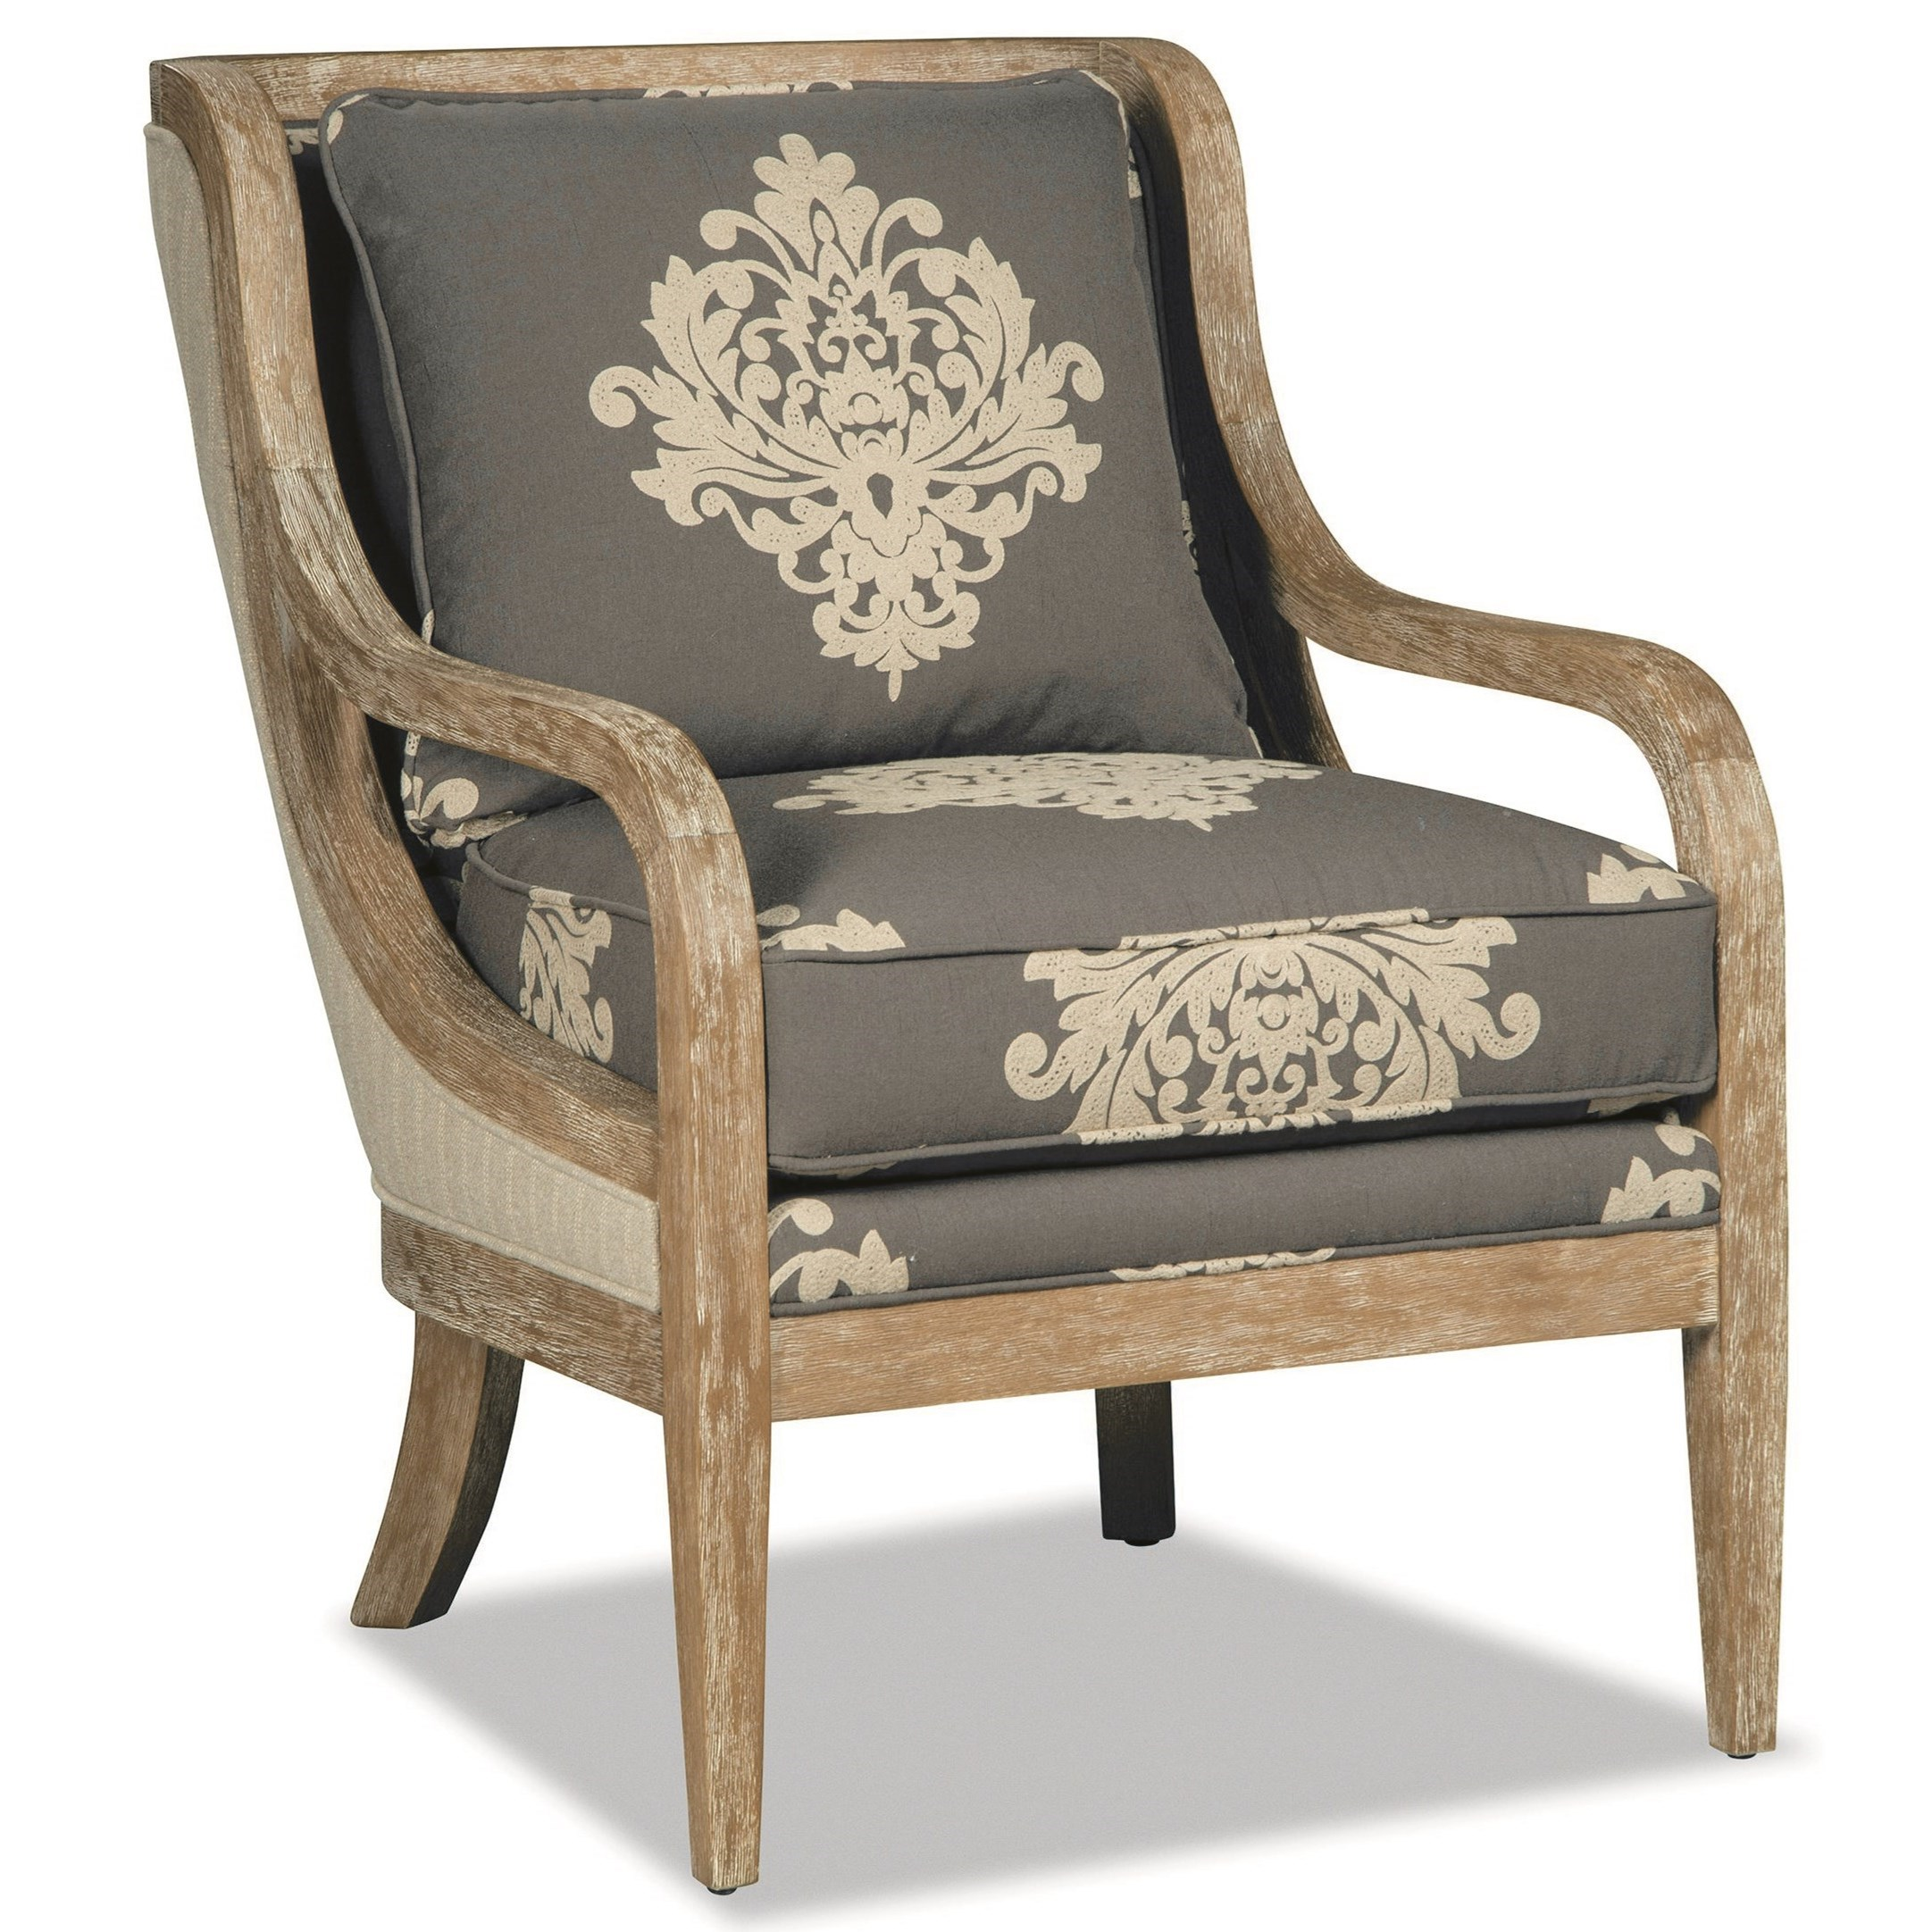 067510BD Accent Chair by Craftmaster at Prime Brothers Furniture